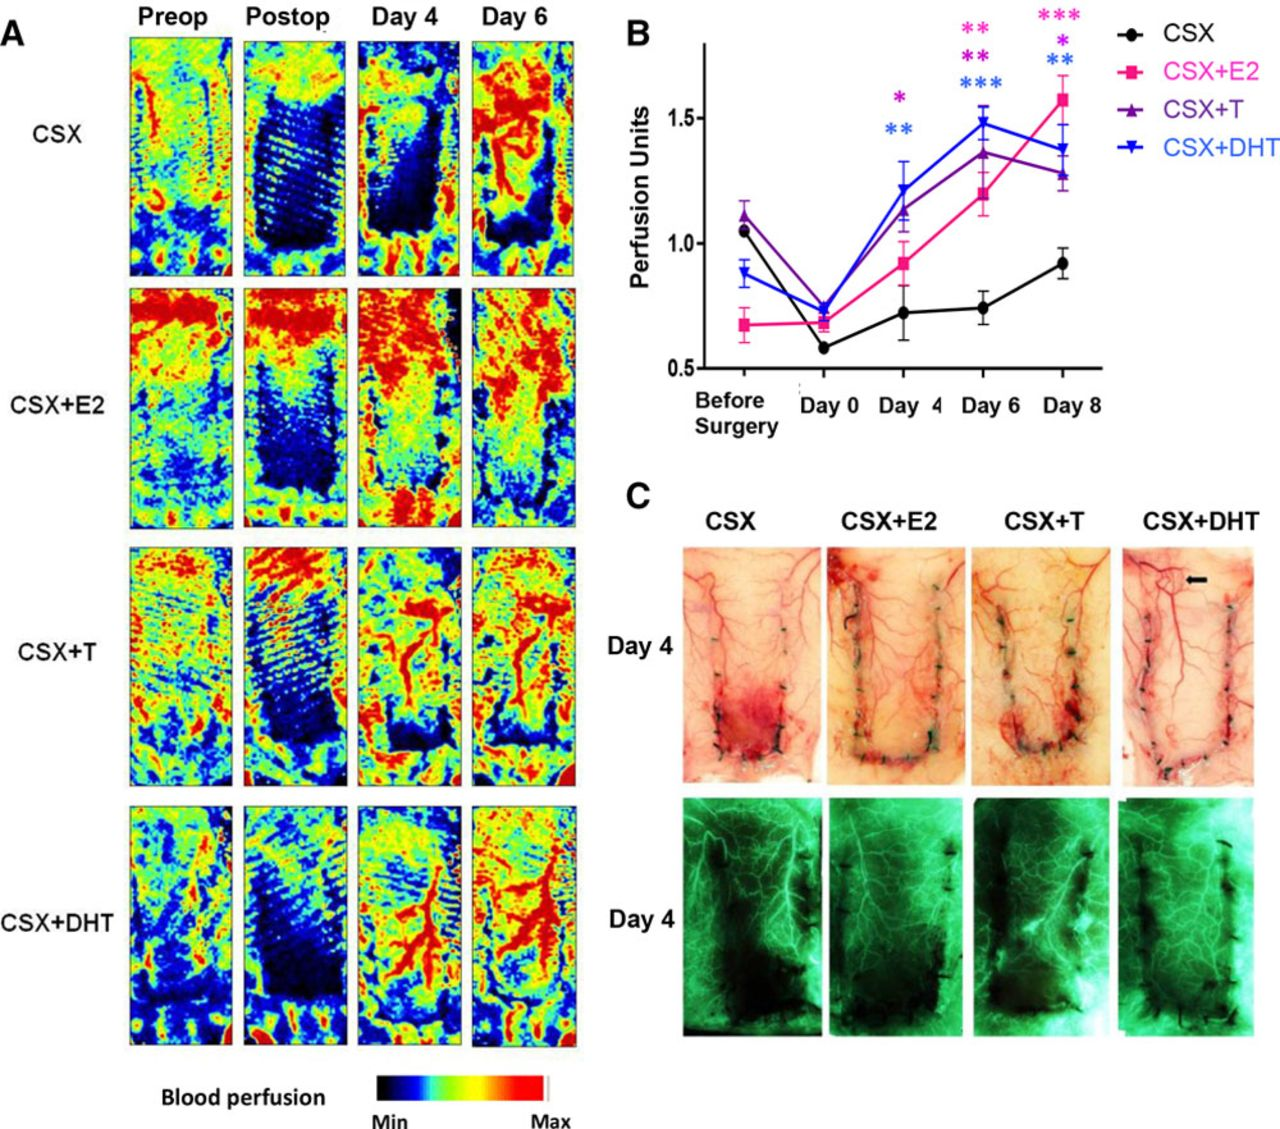 Testosterone Prevents Cutaneous Ischemia and Necrosis in